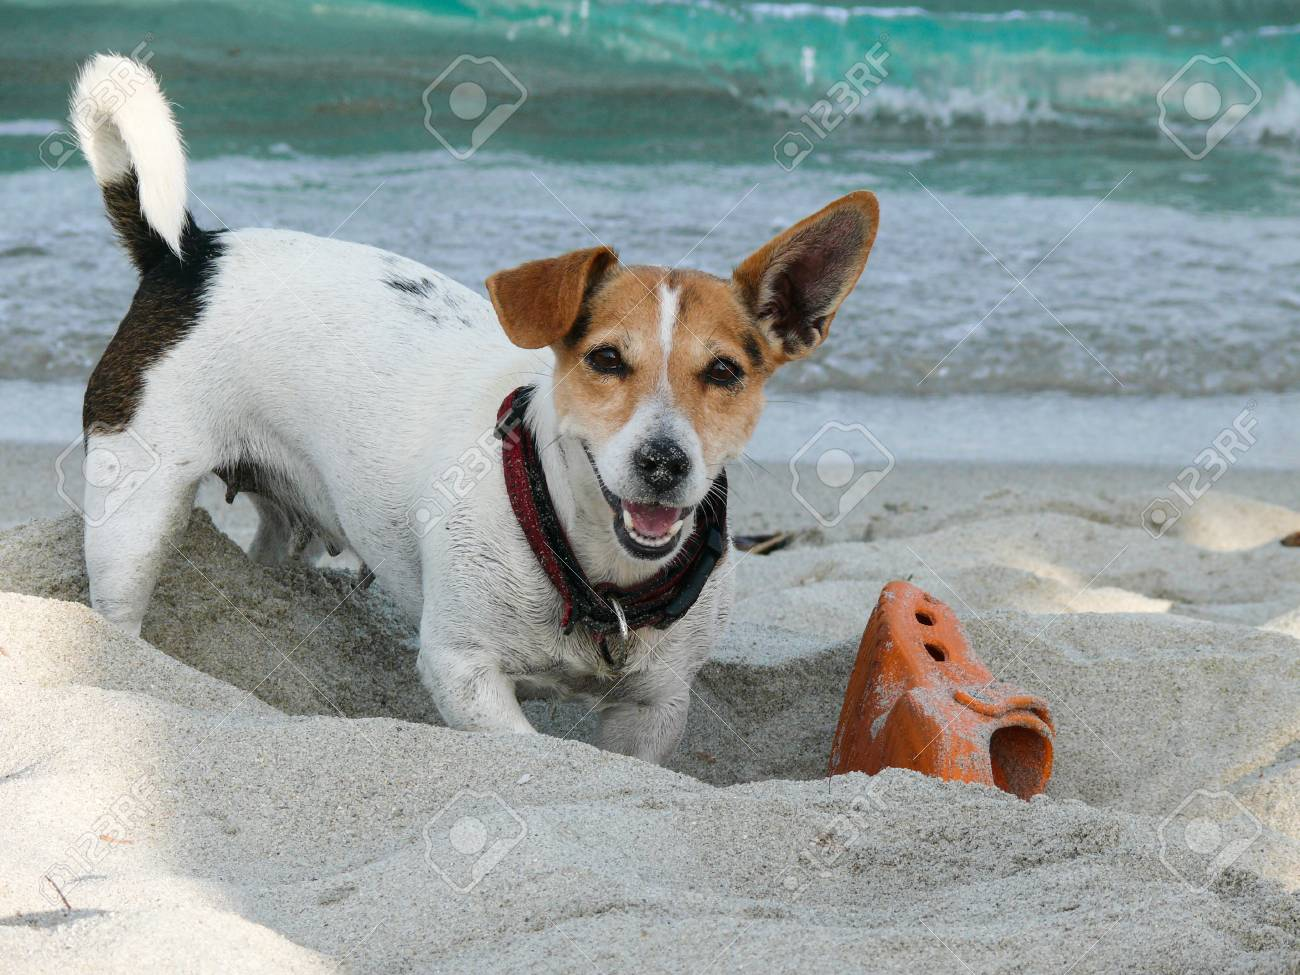 022436097ba Cute dog Jack Russell Terrier play with shoe on the beach Stock Photo -  101585656